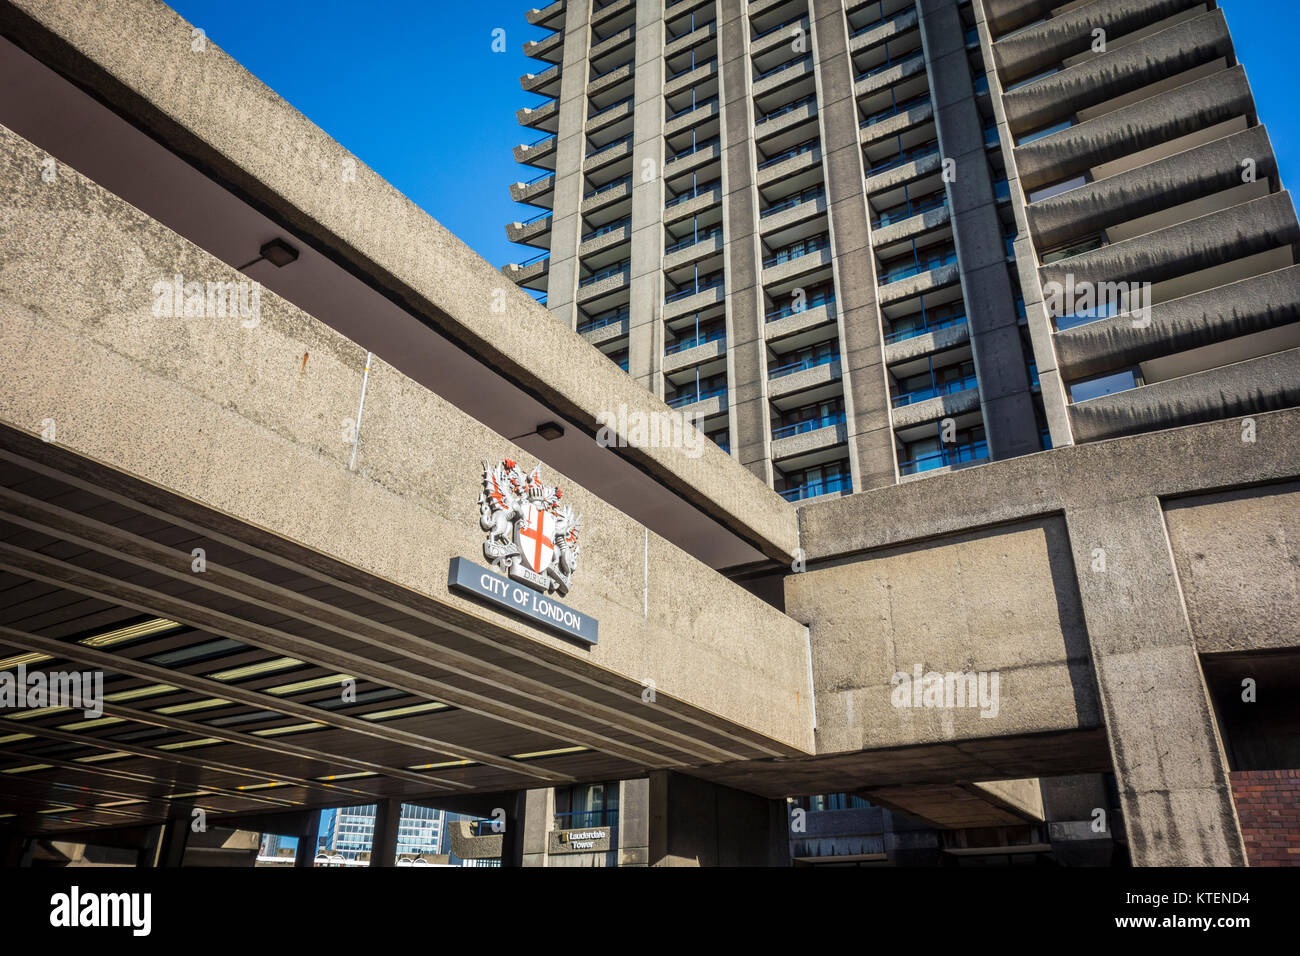 City of London coat of arms at the Barbican Estate, Beech Street, London, UK - Stock Image